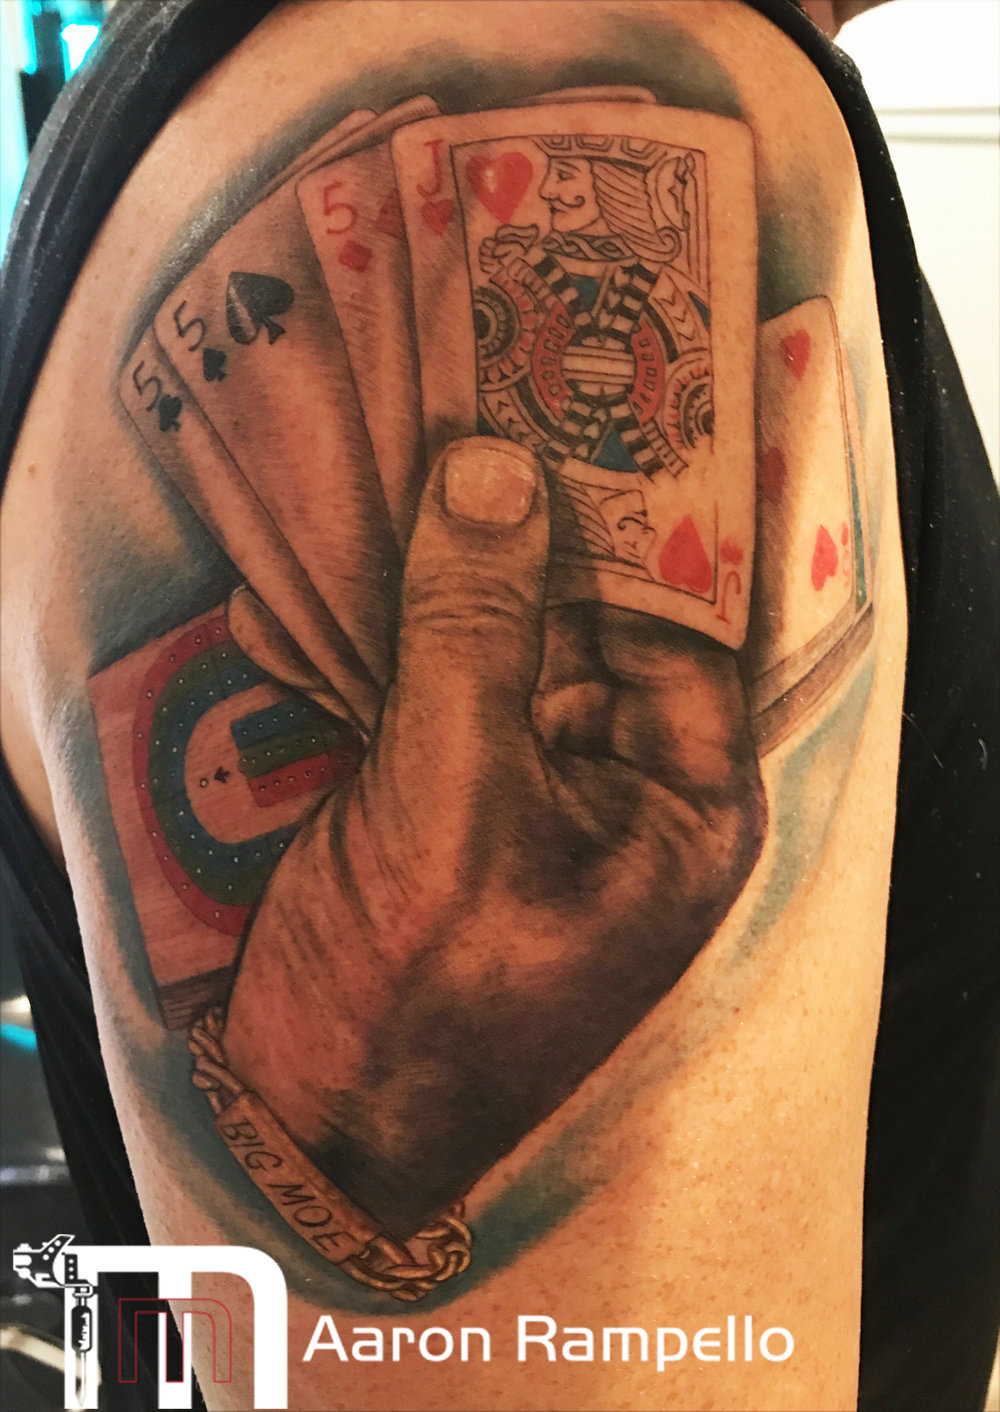 cribbage masters method tattoo.jpg